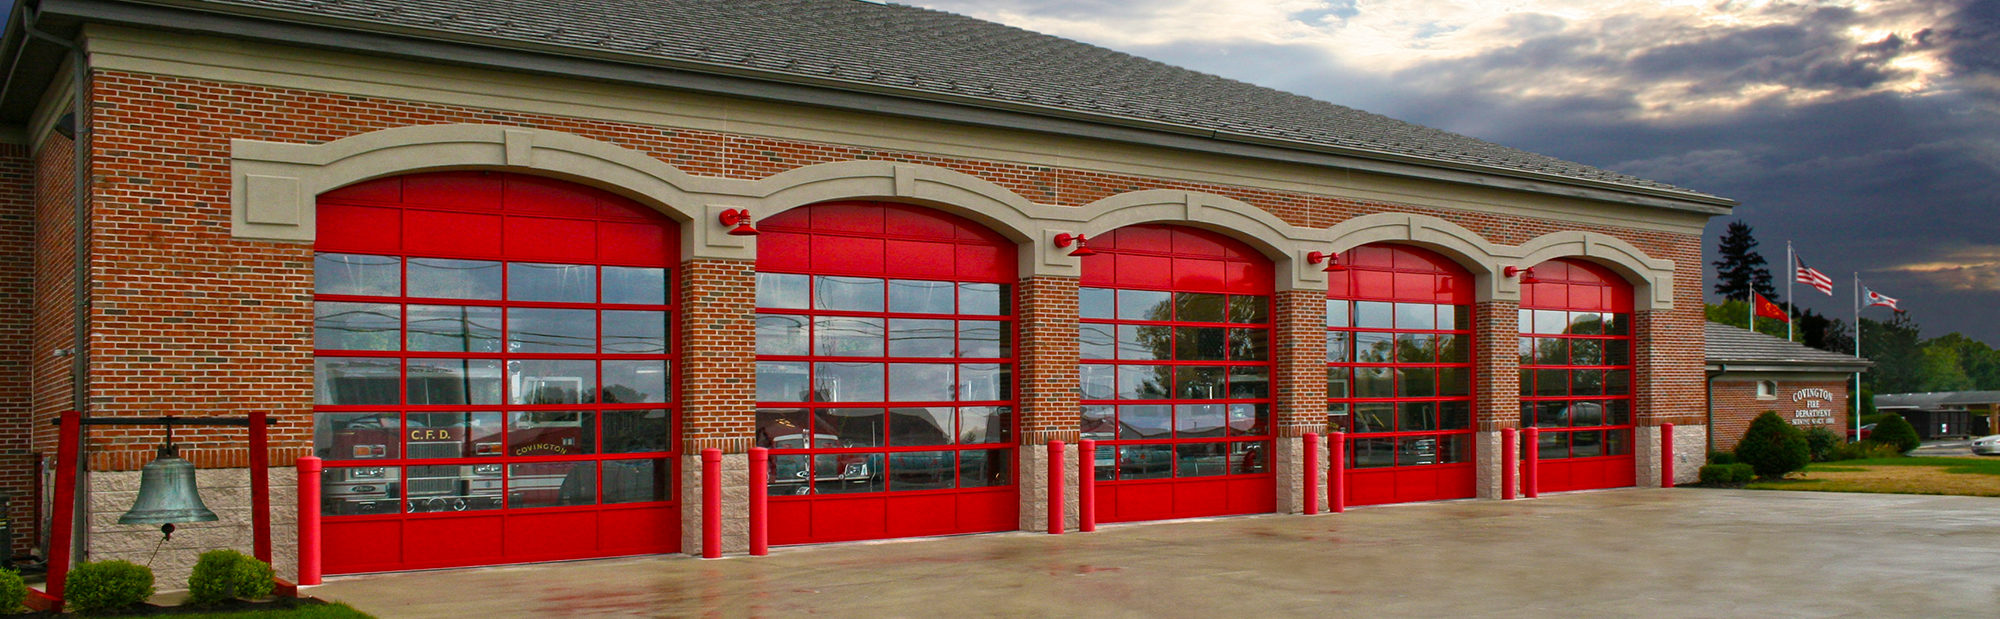 Fire Station Overhead Doors